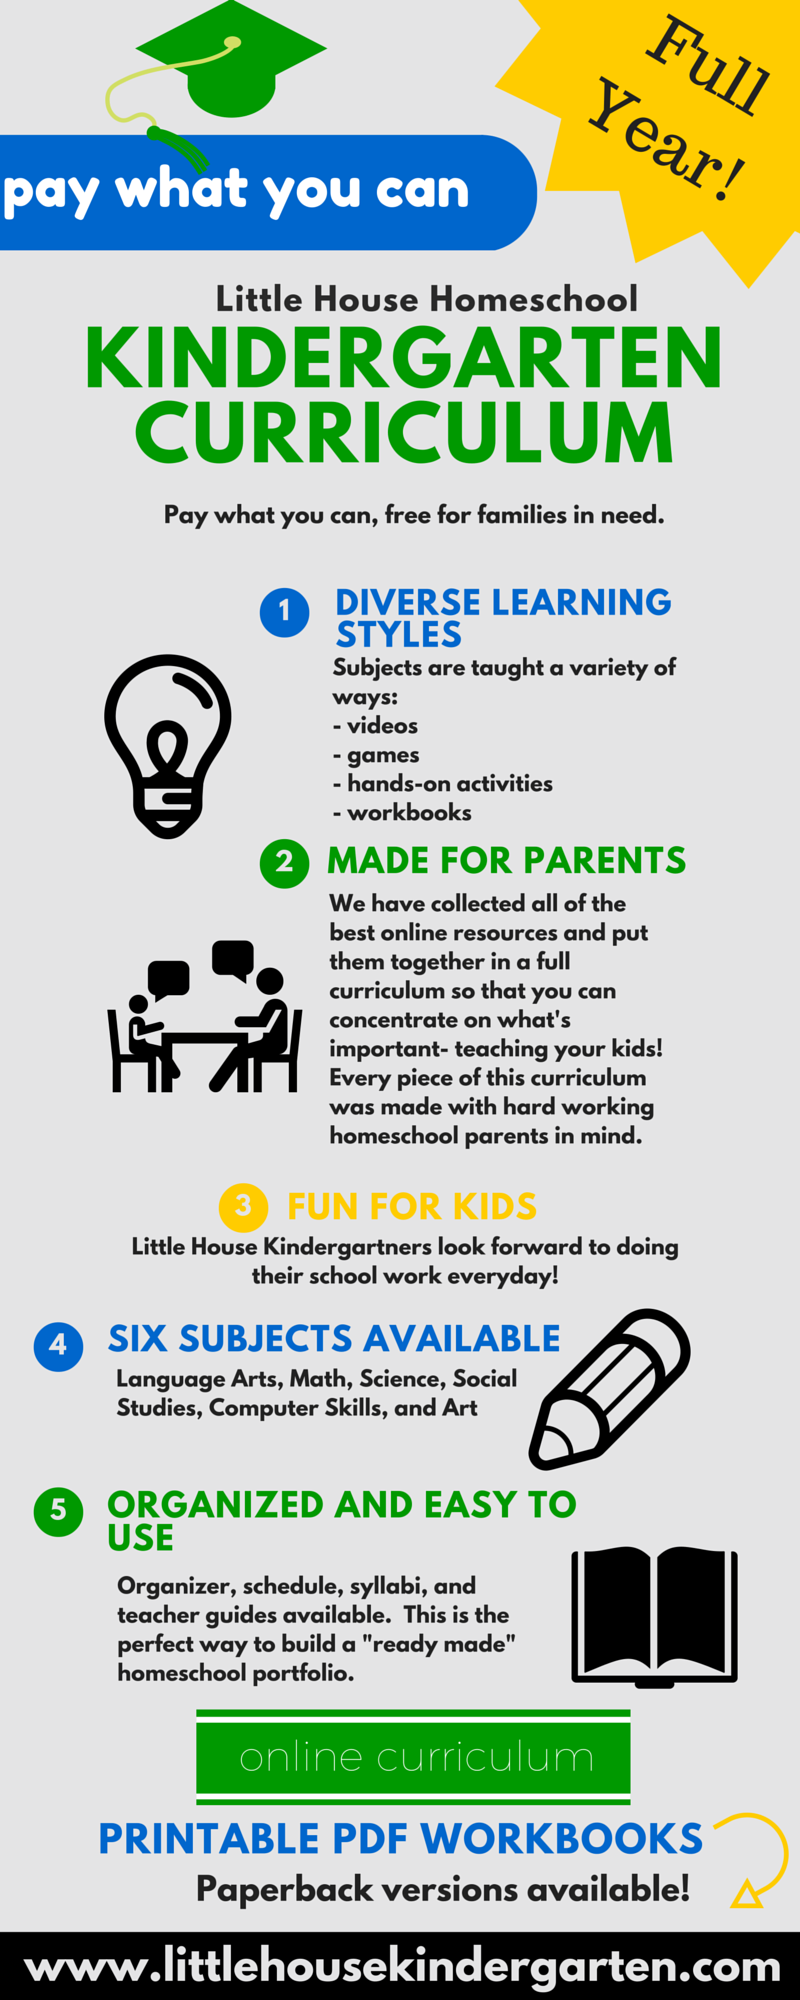 Worksheet Kindergarten Curriculum Free little house kindergarten littlehouseinfographic littlehousekindergarten1